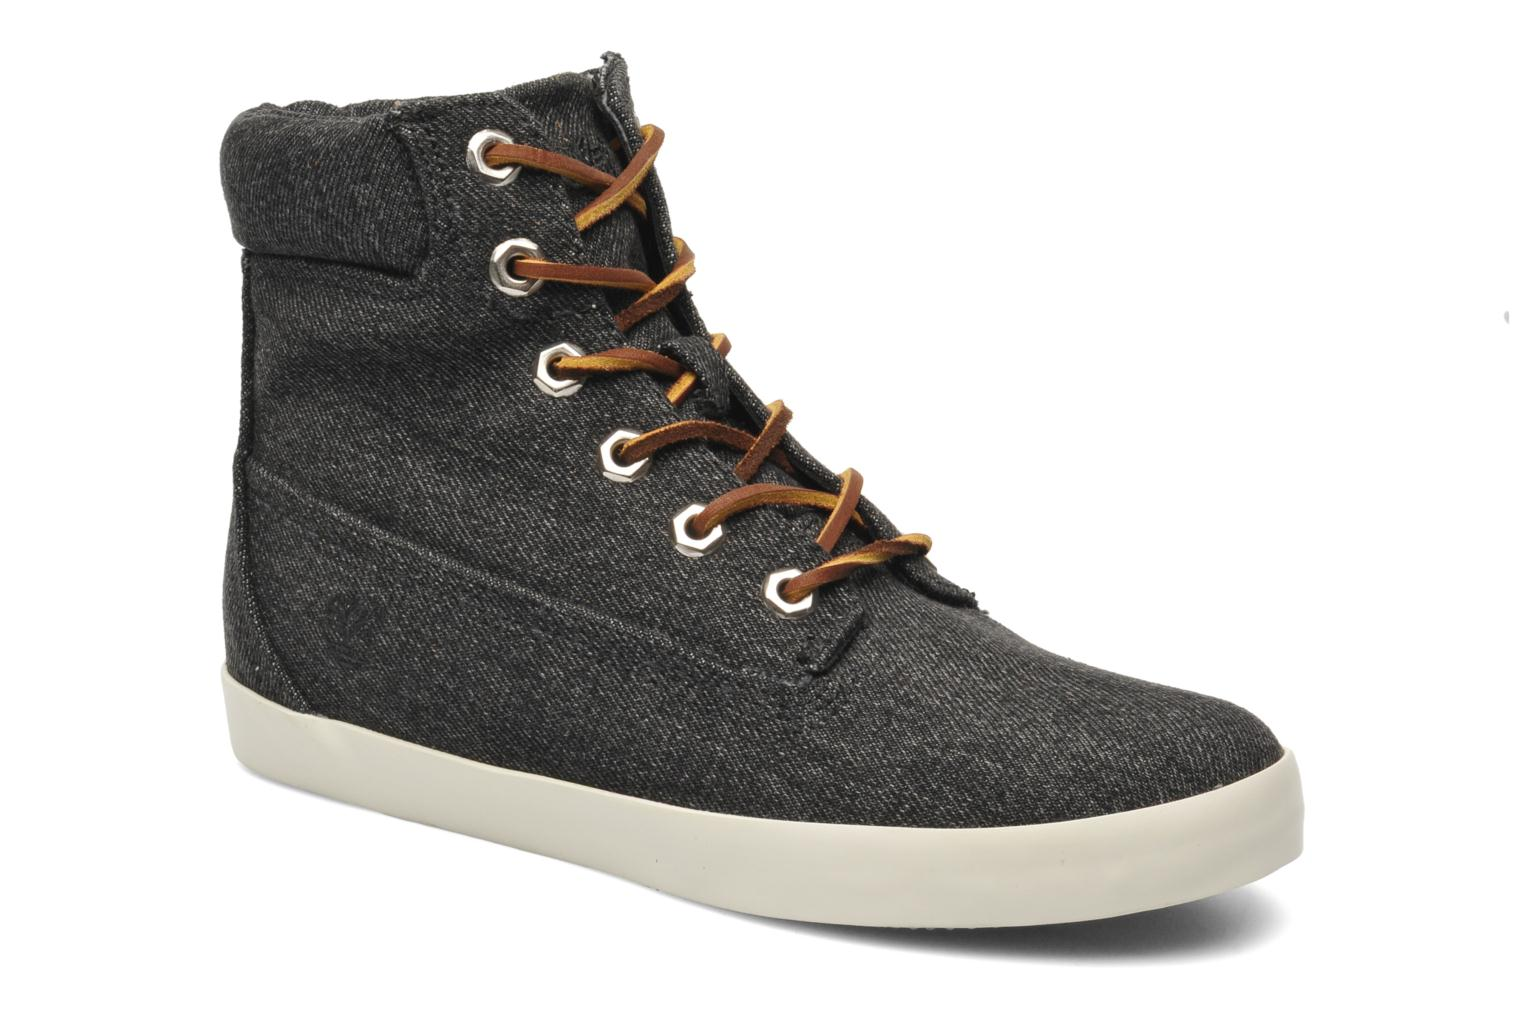 "Earthkeepers Glastenbury Fab 6"" Boot Black Washed Denim"